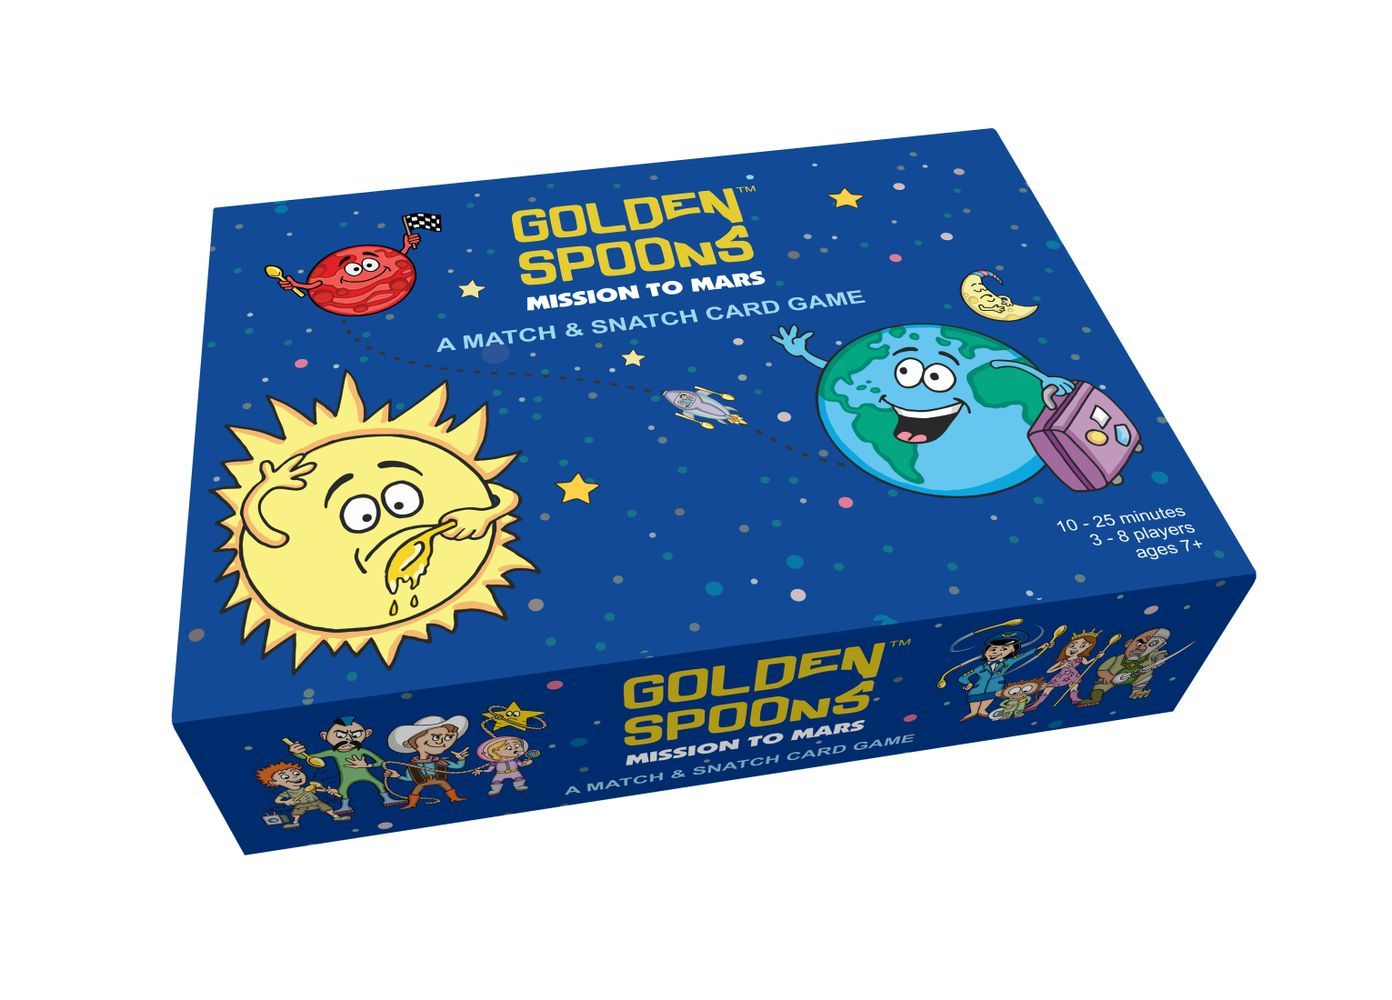 Golden Spoons: Mission to Mars – A Match & Snatch Card Game - Walking Pants Curiosities